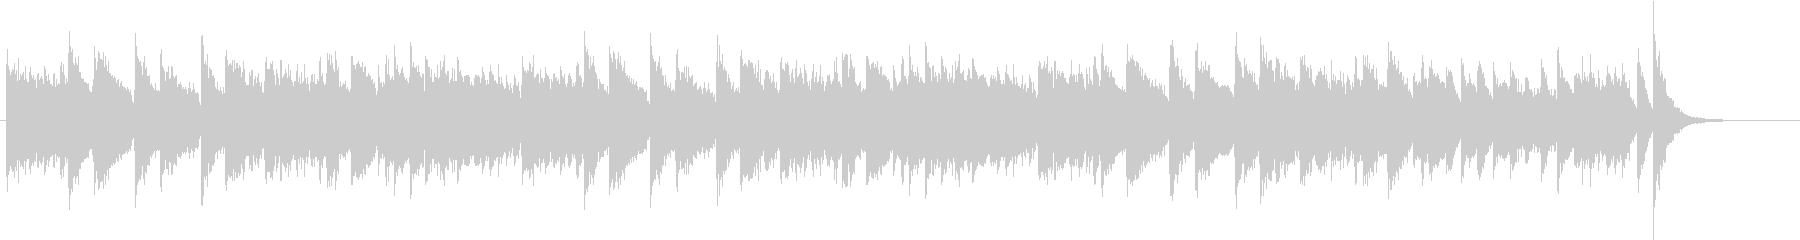 Battle of Jericho: That melody I heard somewhere's unreproduced waveform